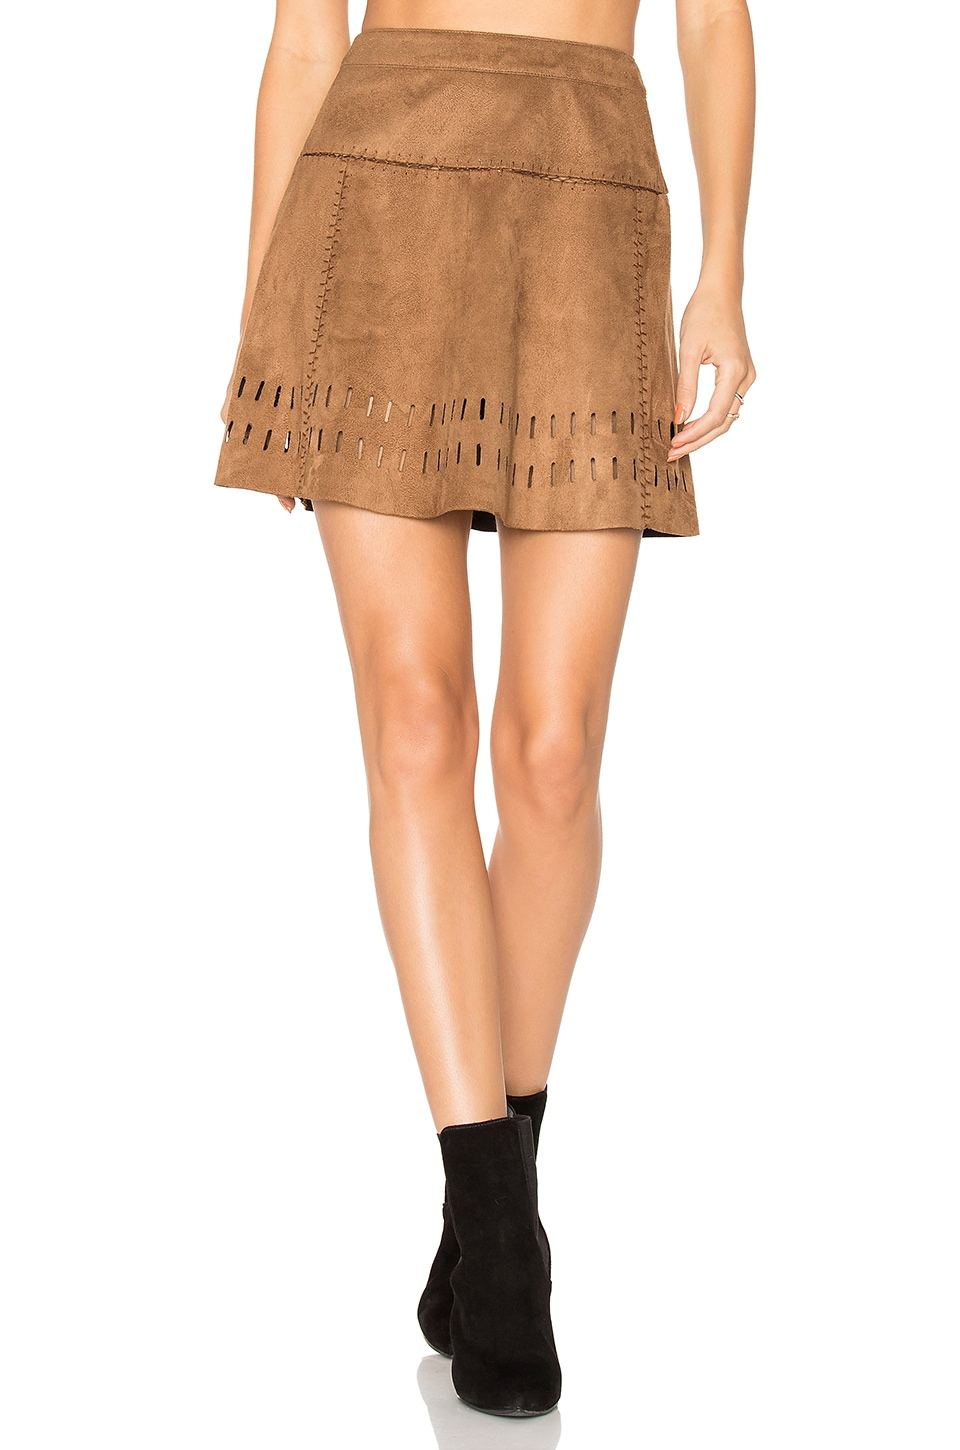 ale by alessandra x REVOLVE Mayte Skirt in Caramel